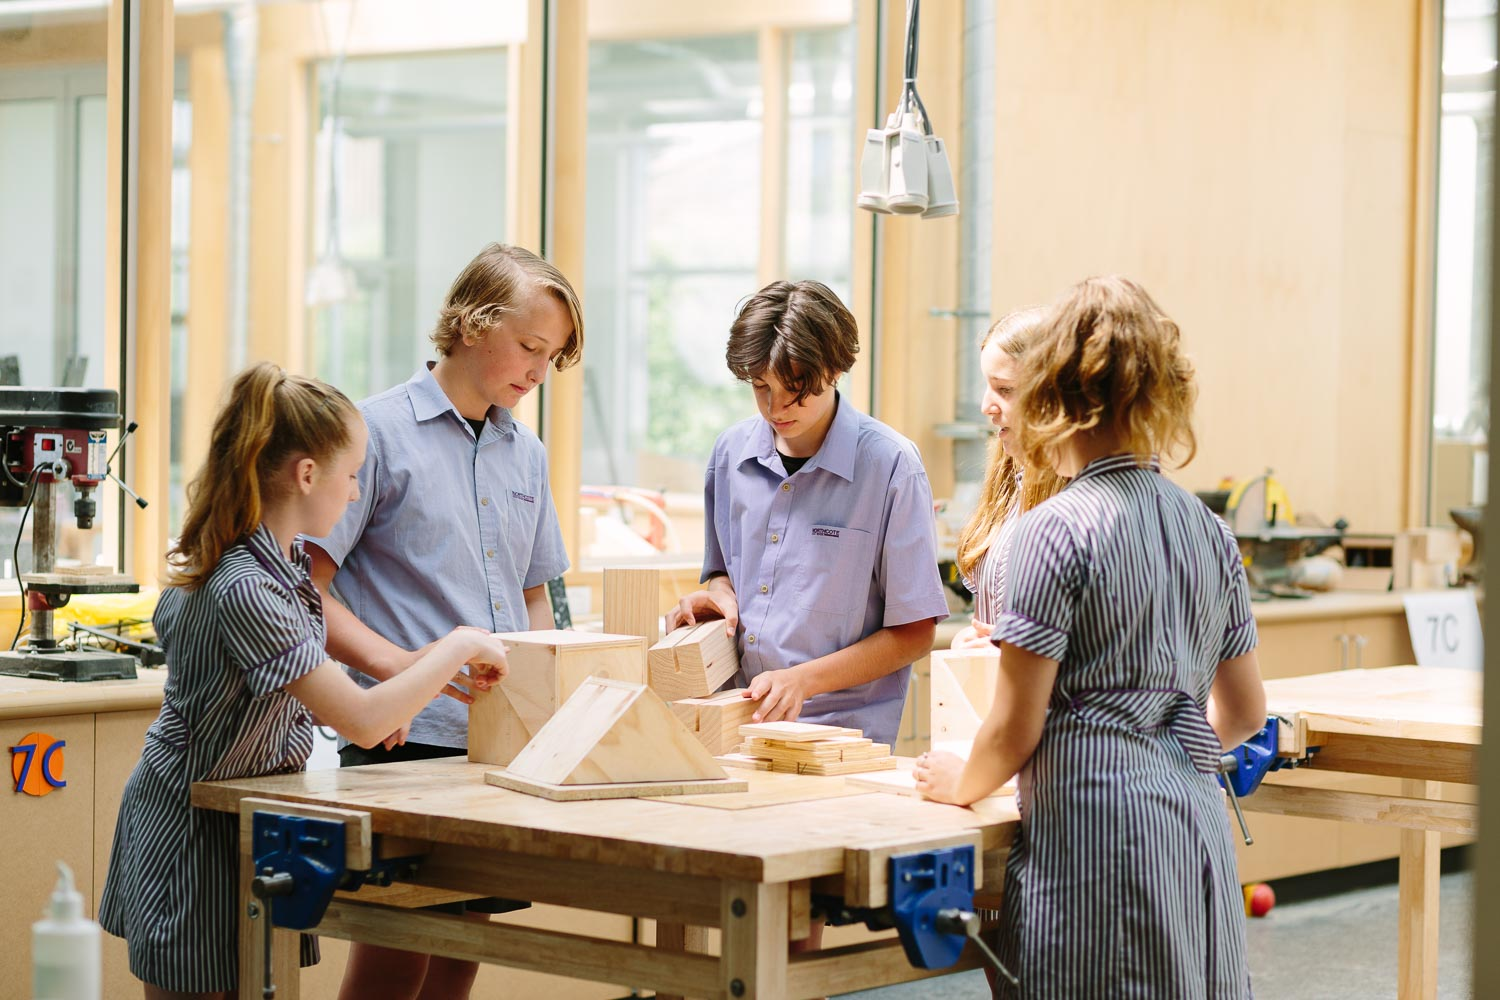 Group of students working on a wooden design